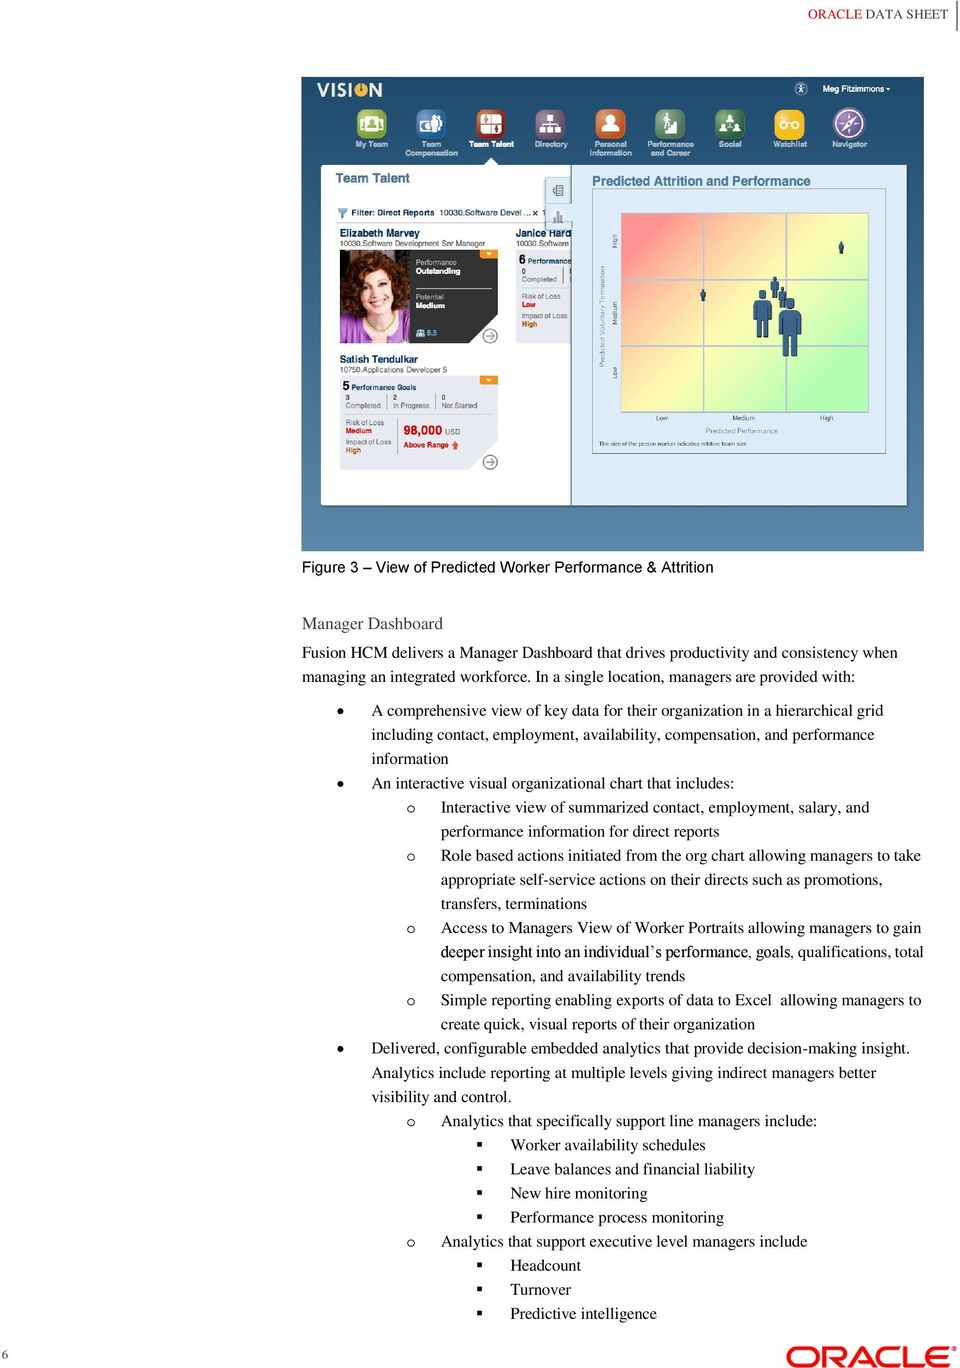 performance information An interactive visual organizational chart that includes: o Interactive view of summarized contact, employment, salary, and performance information for direct reports o Role